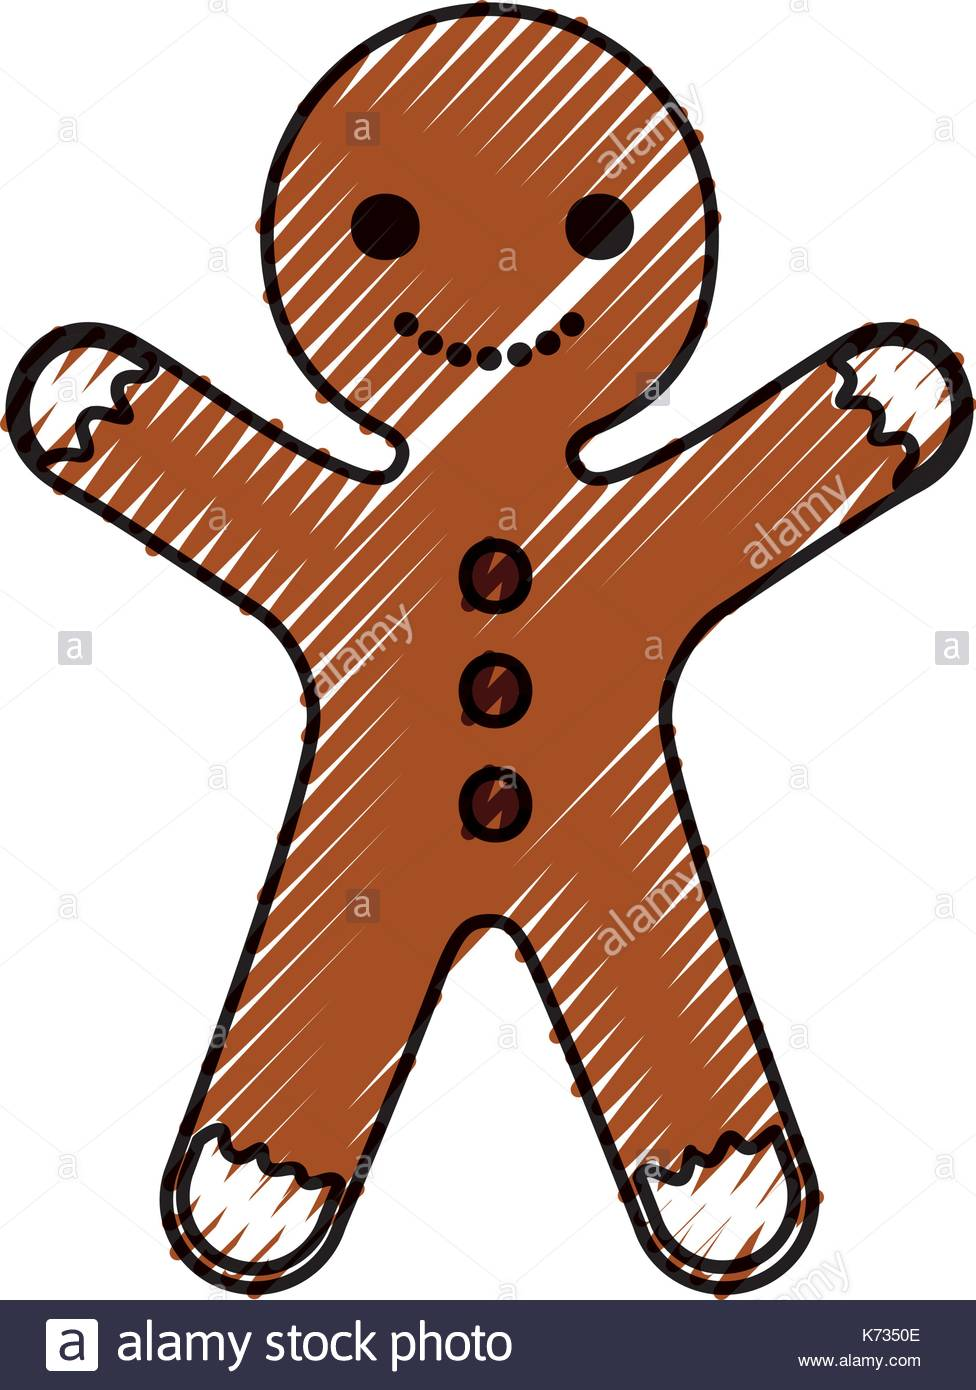 976x1390 Gingerman Homemade Christmas Gingerbread Cookie Style Stock Vector